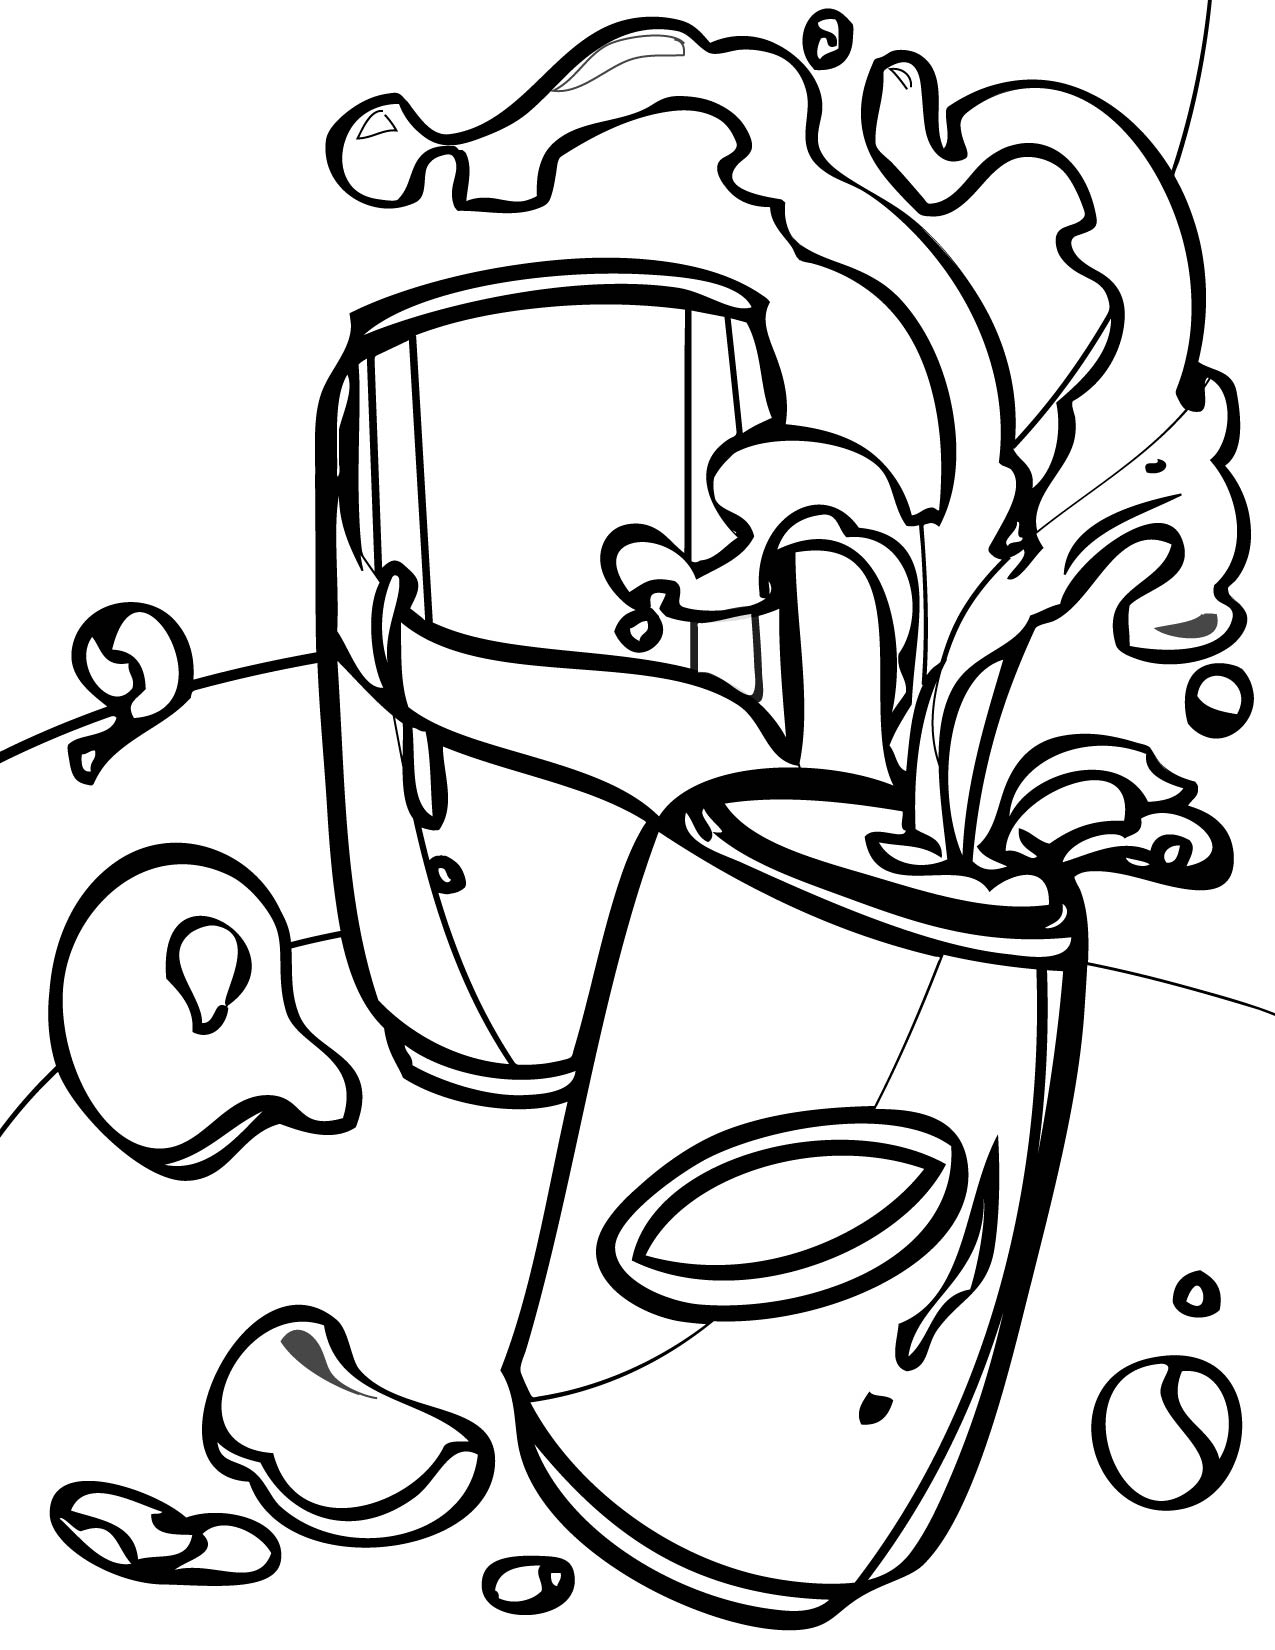 1275x1650 Awesome Soda Can Coloring Pages Gallery Printable Coloring Sheet